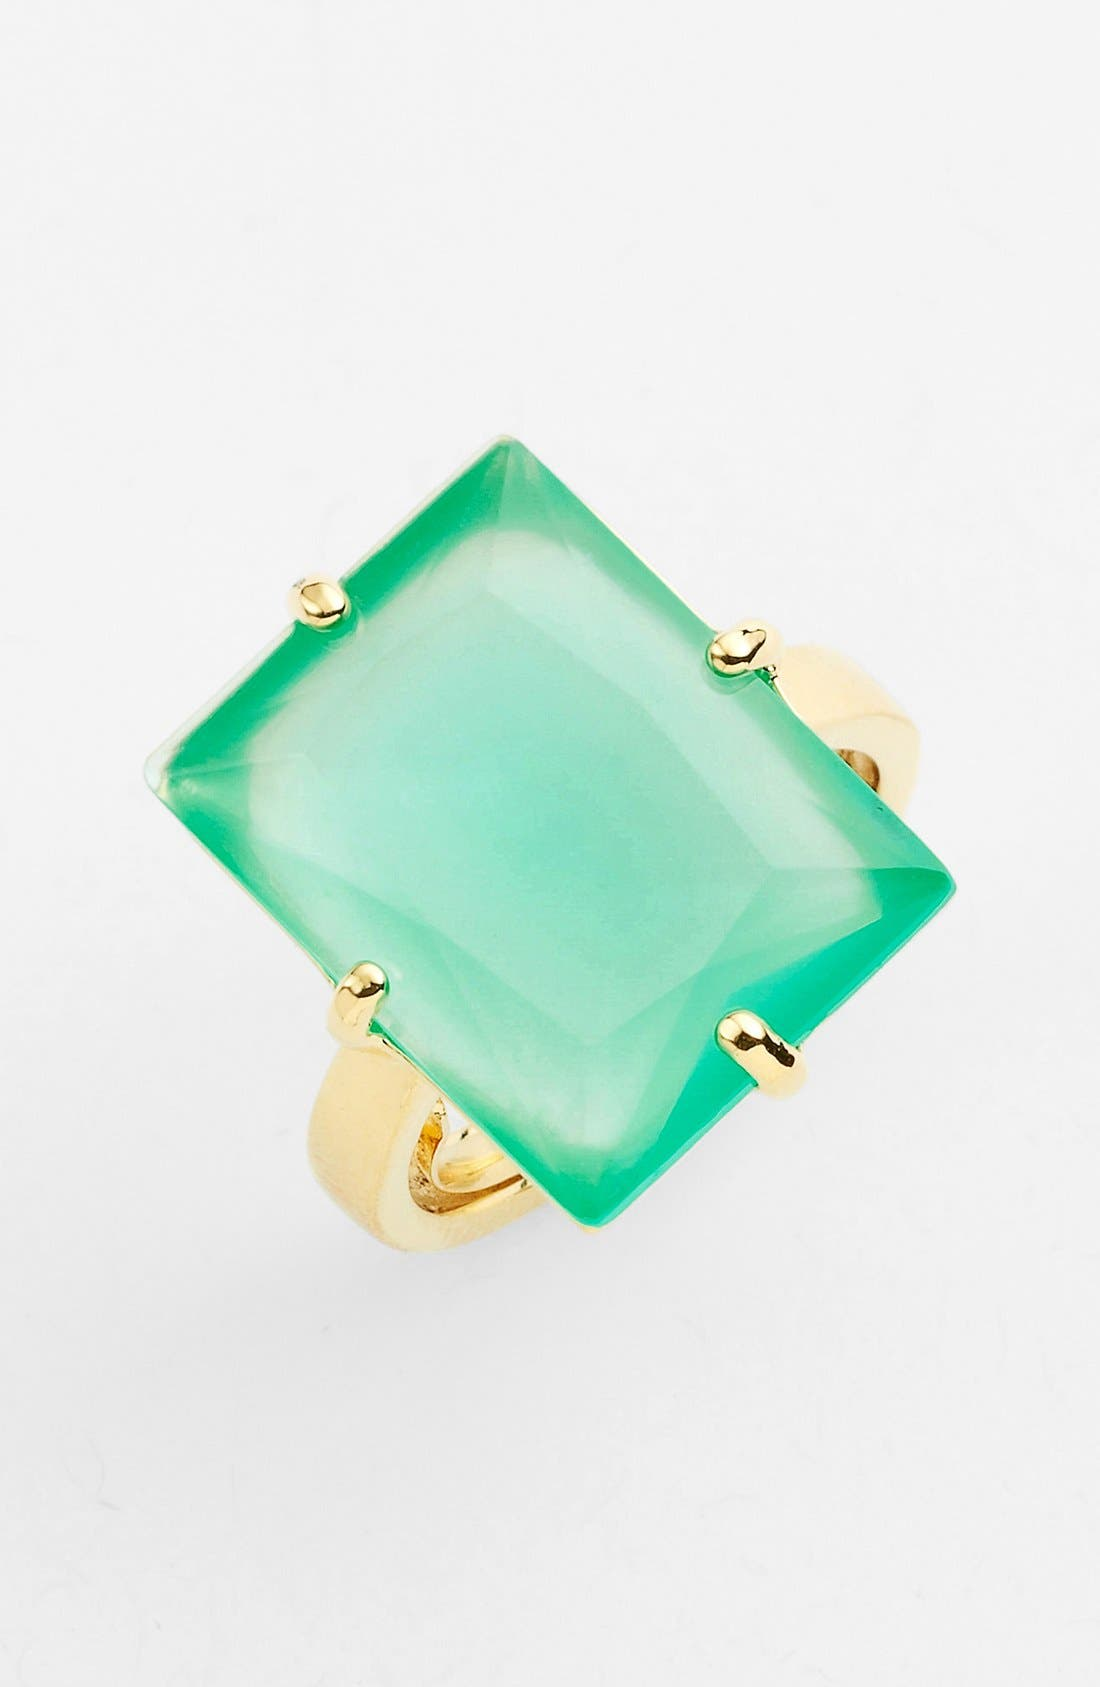 Alternate Image 1 Selected - kate spade new york 'hancock park' adjustable cocktail ring (Nordstrom Exclusive)